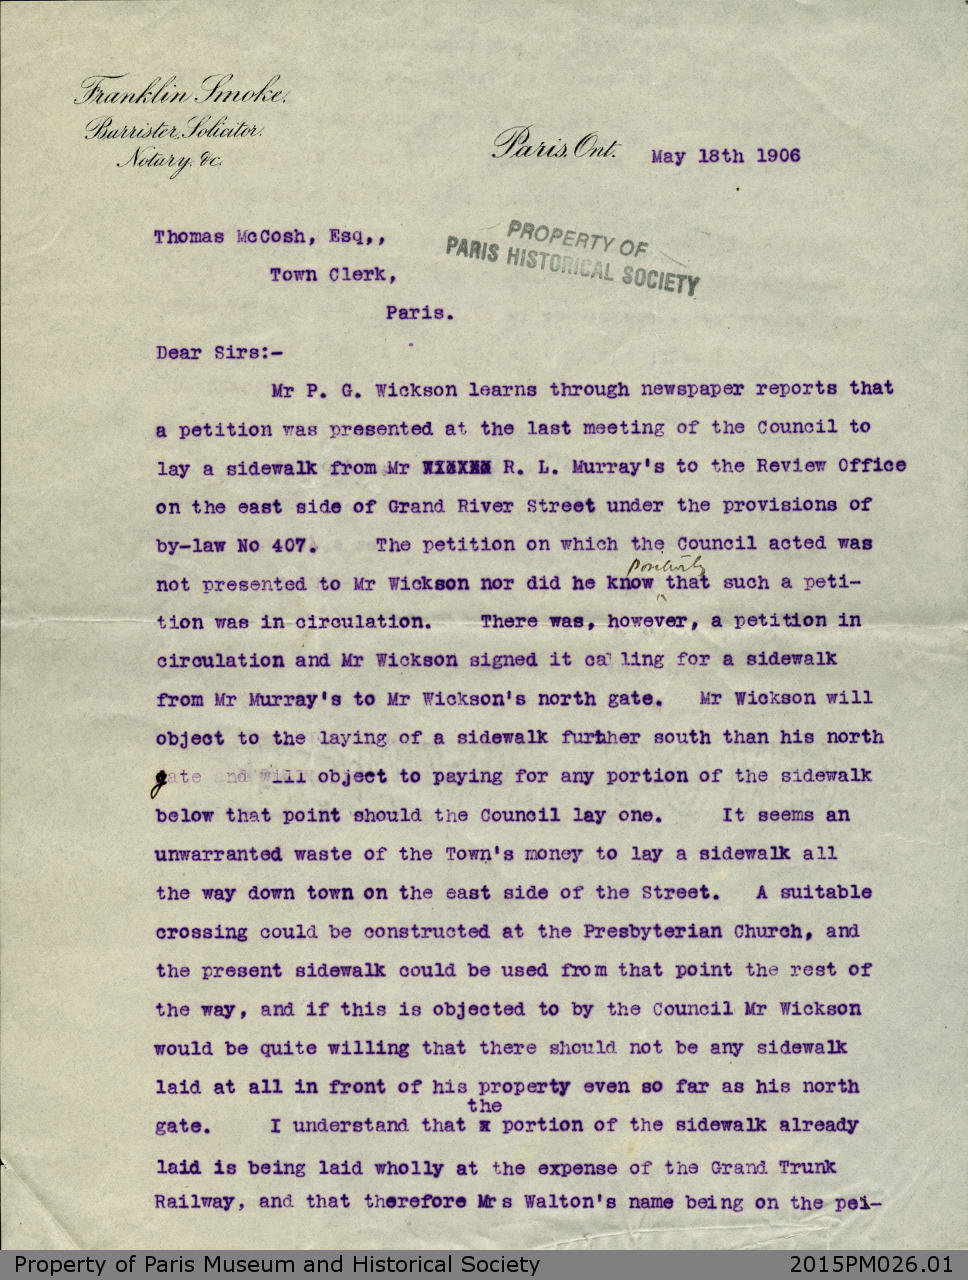 Letter from Franklin Smoke to Thomas McCosh